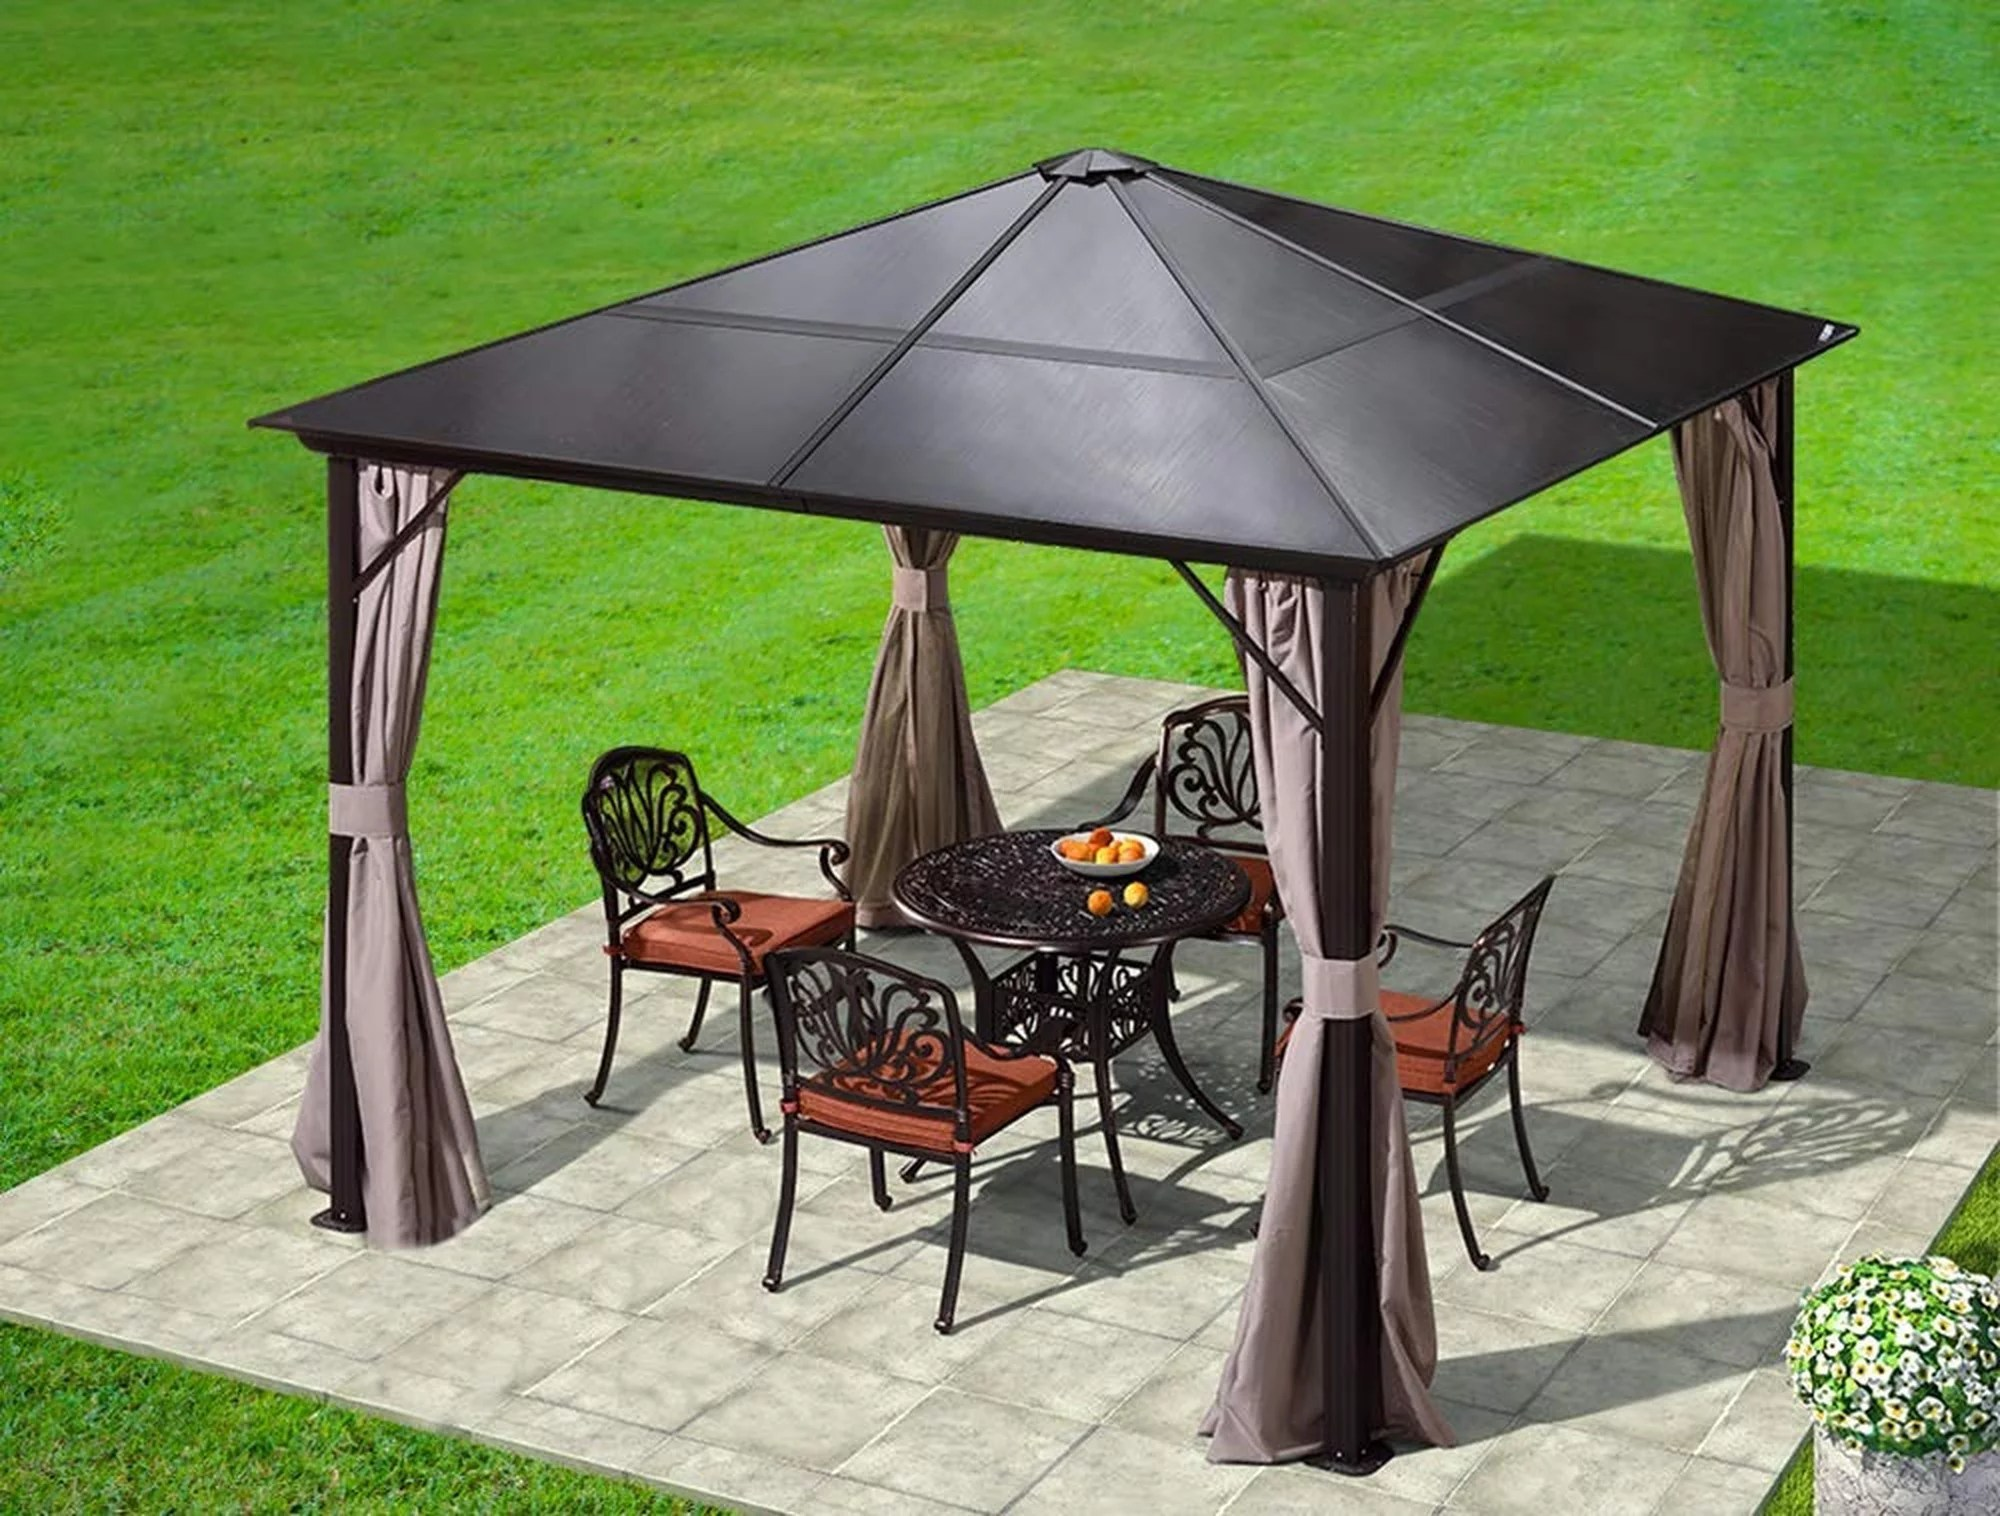 erommy 10x10ft outdoor hardtop gazebo canopy curtains aluminum furniture with netting for garden patio lawns parties